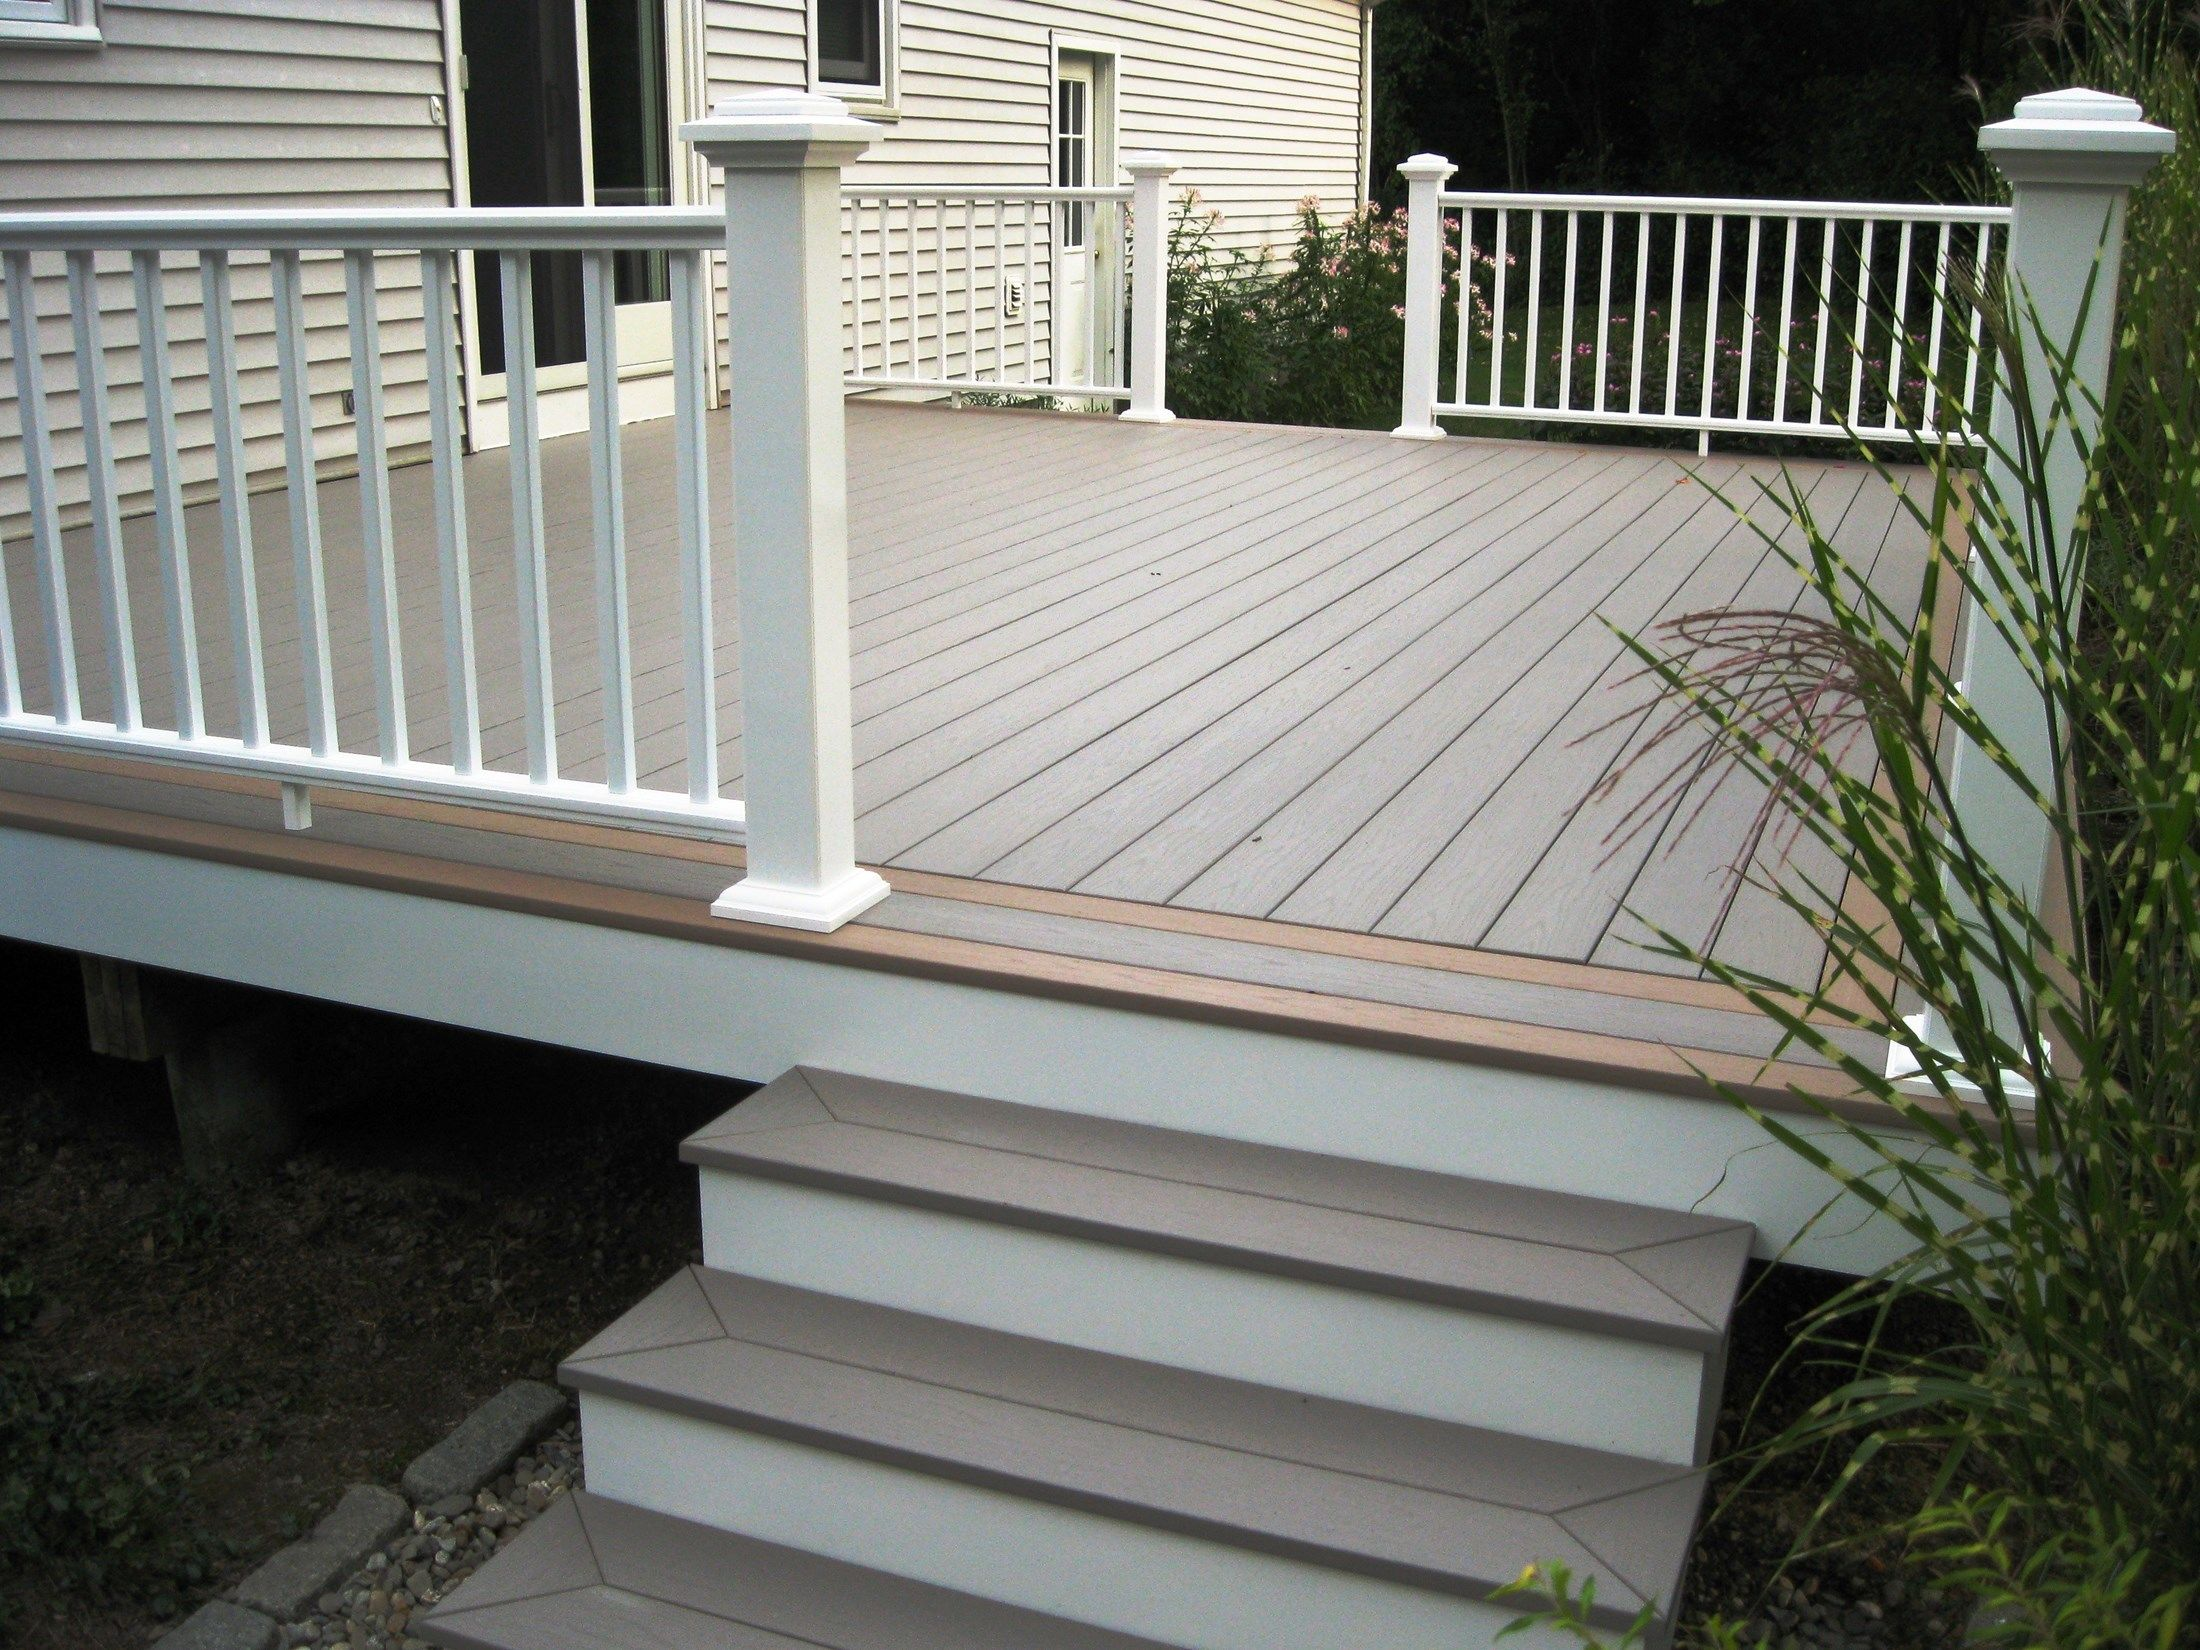 Pvc Decking And Rails Picture 6295